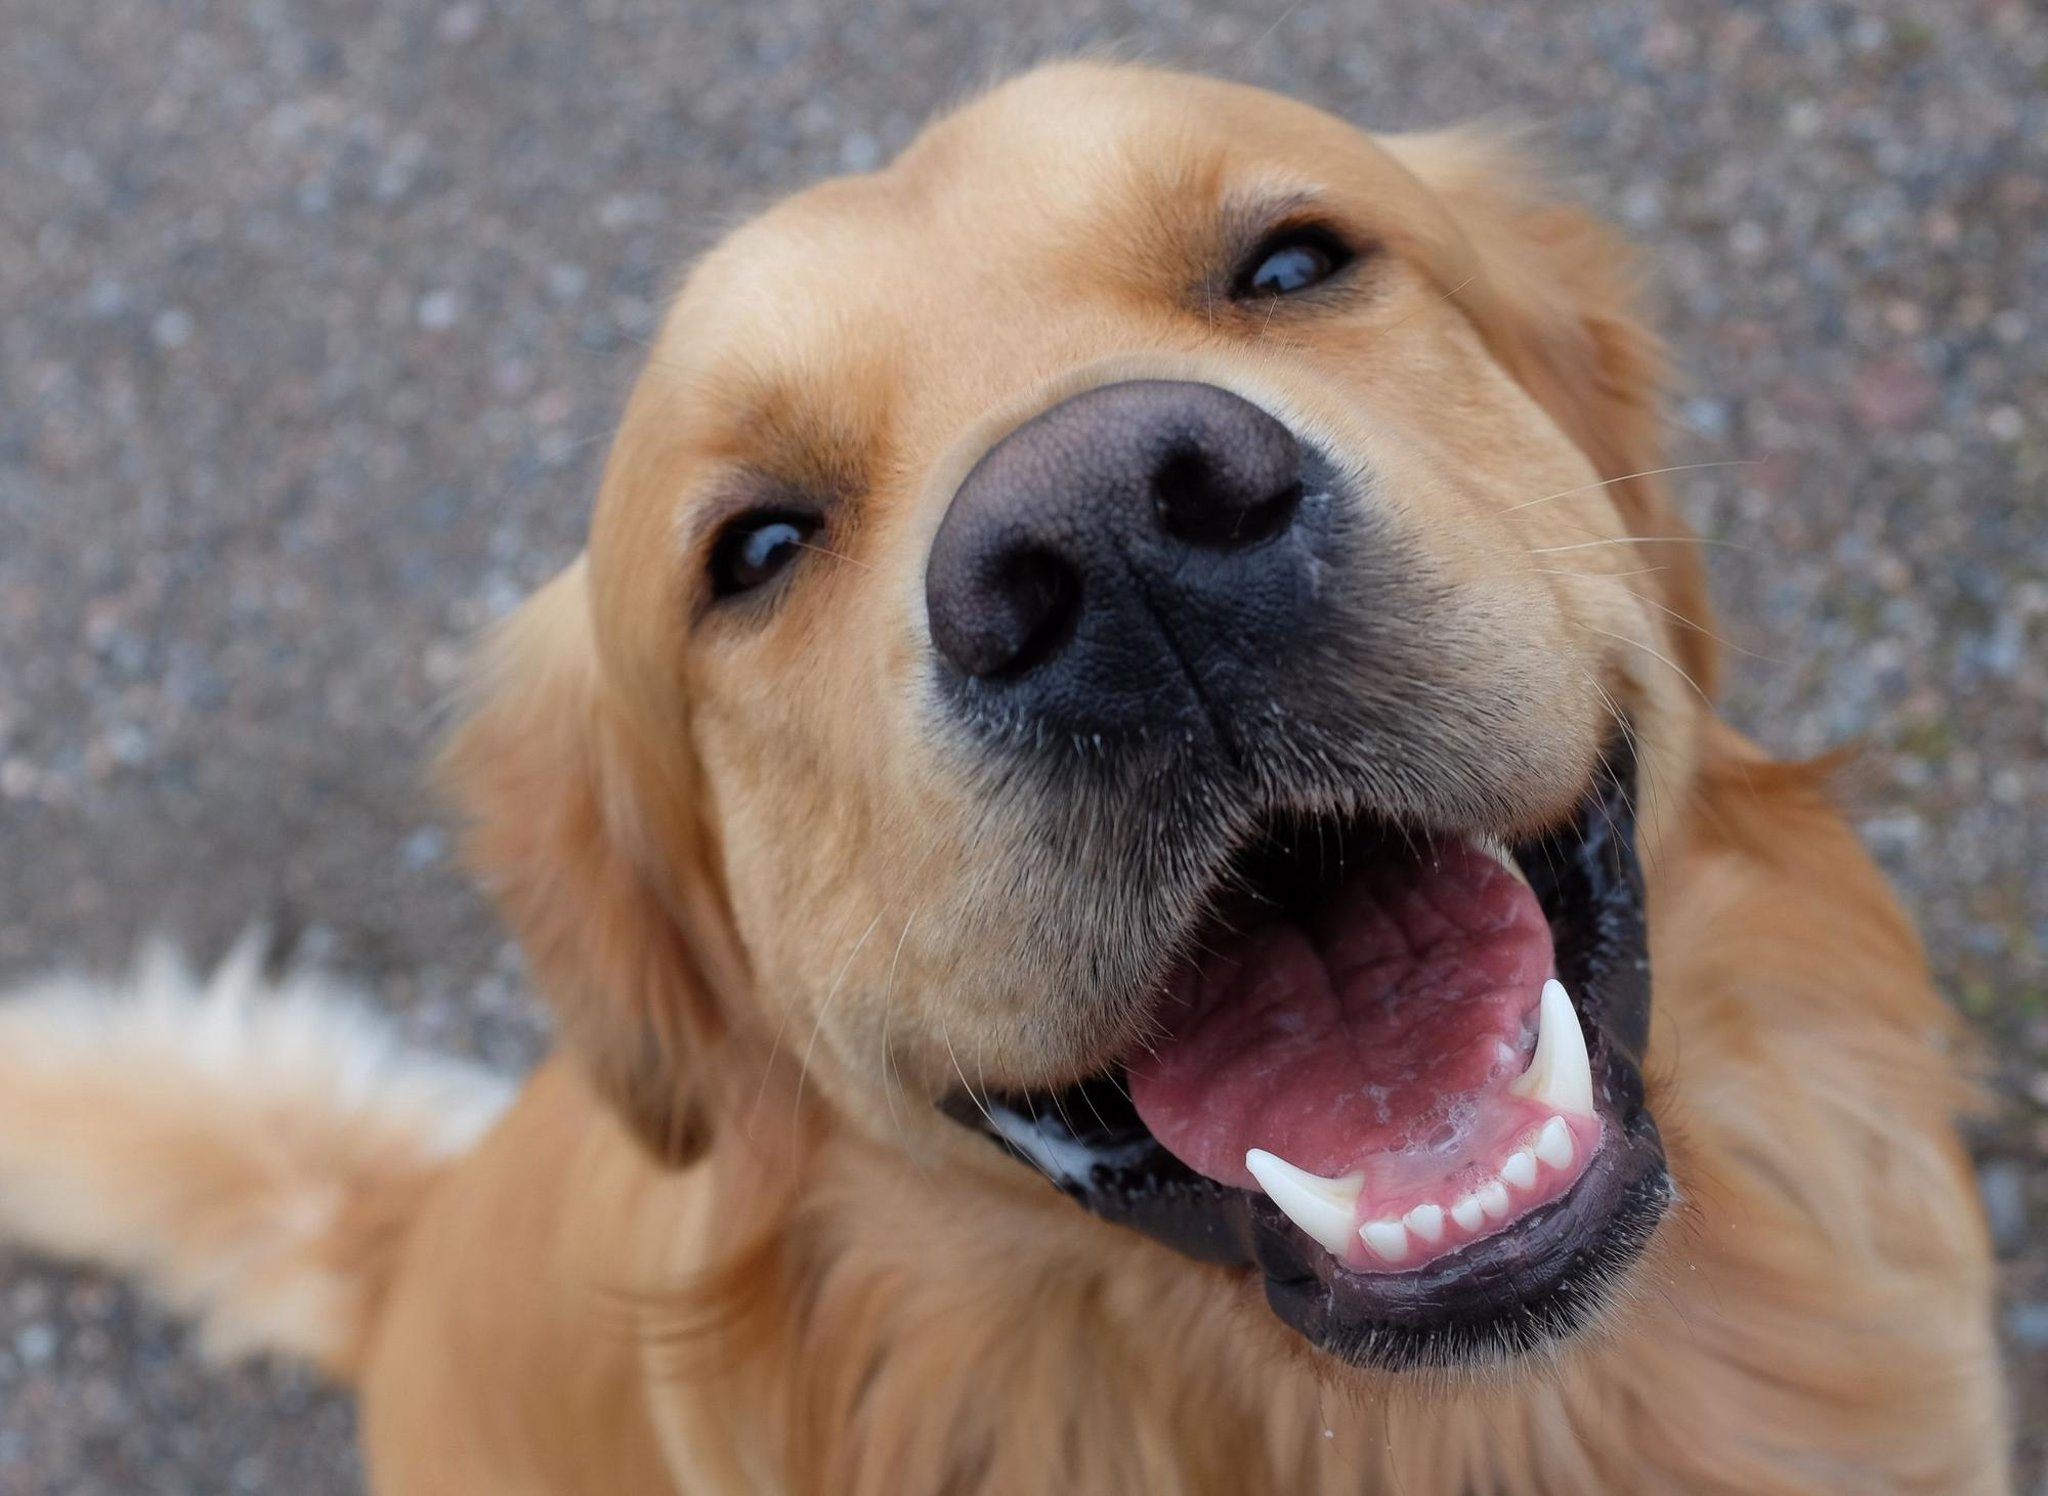 These are 10 fun and interesting dog facts about adorable Golden Retrievers